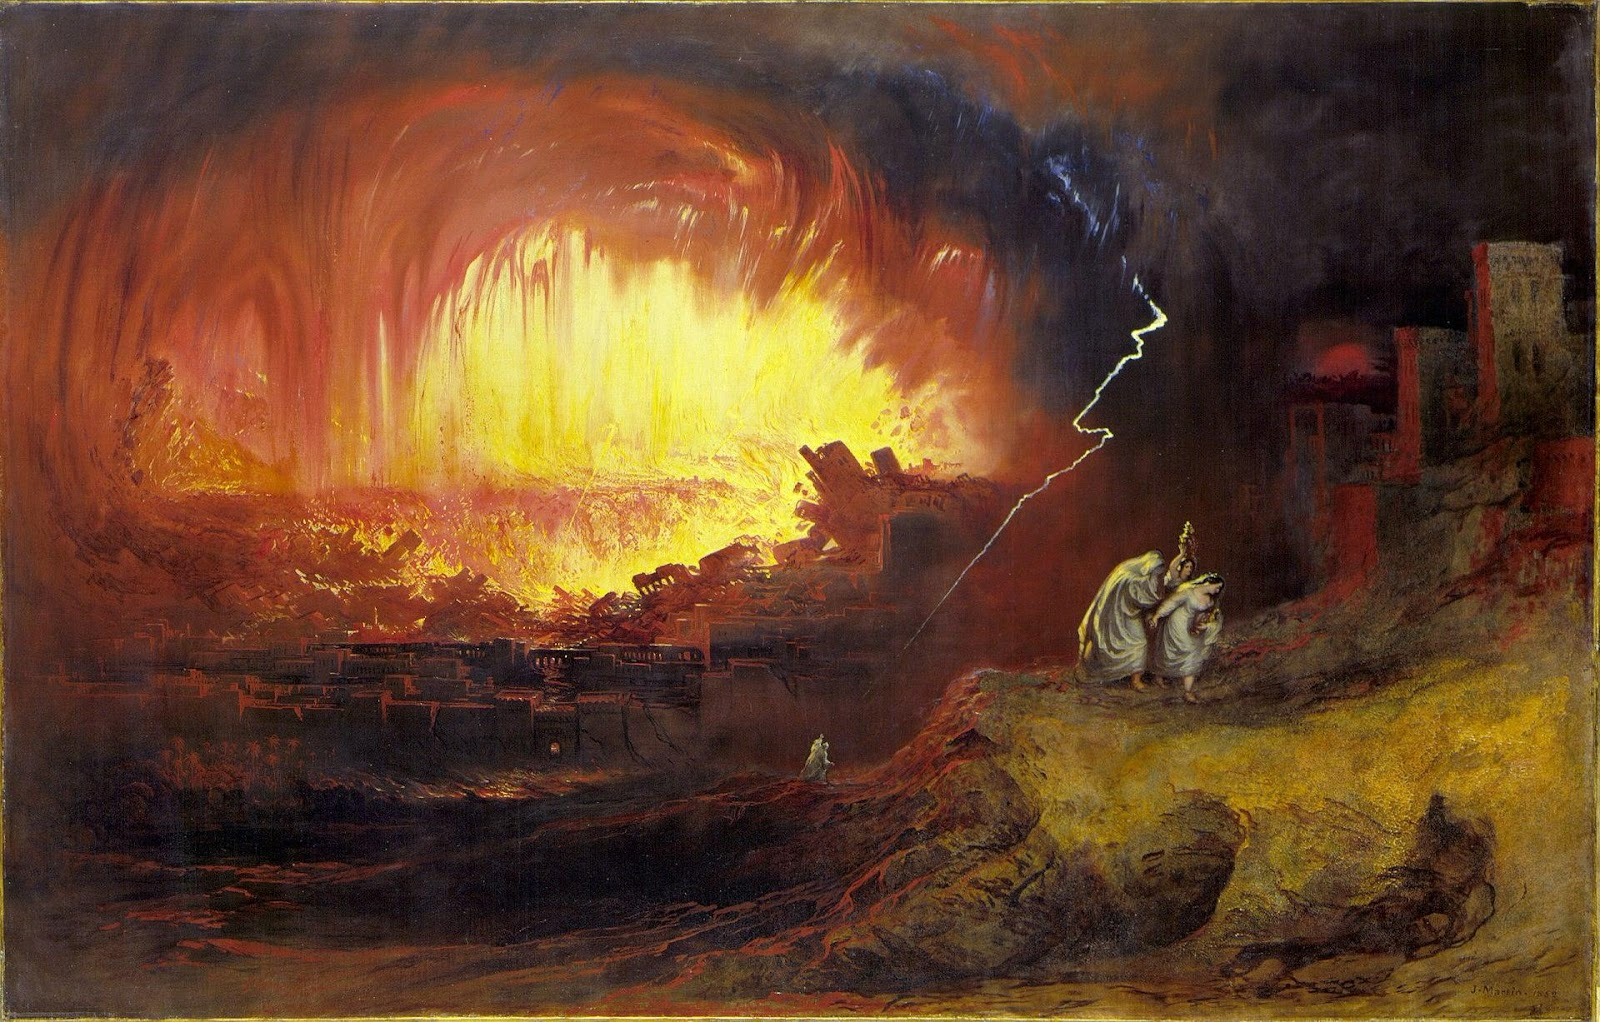 https://upload.wikimedia.org/wikipedia/commons/thumb/e/e1/John_Martin_-_Sodom_and_Gomorrah.jpg/1920px-John_Martin_-_Sodom_and_Gomorrah.jpg